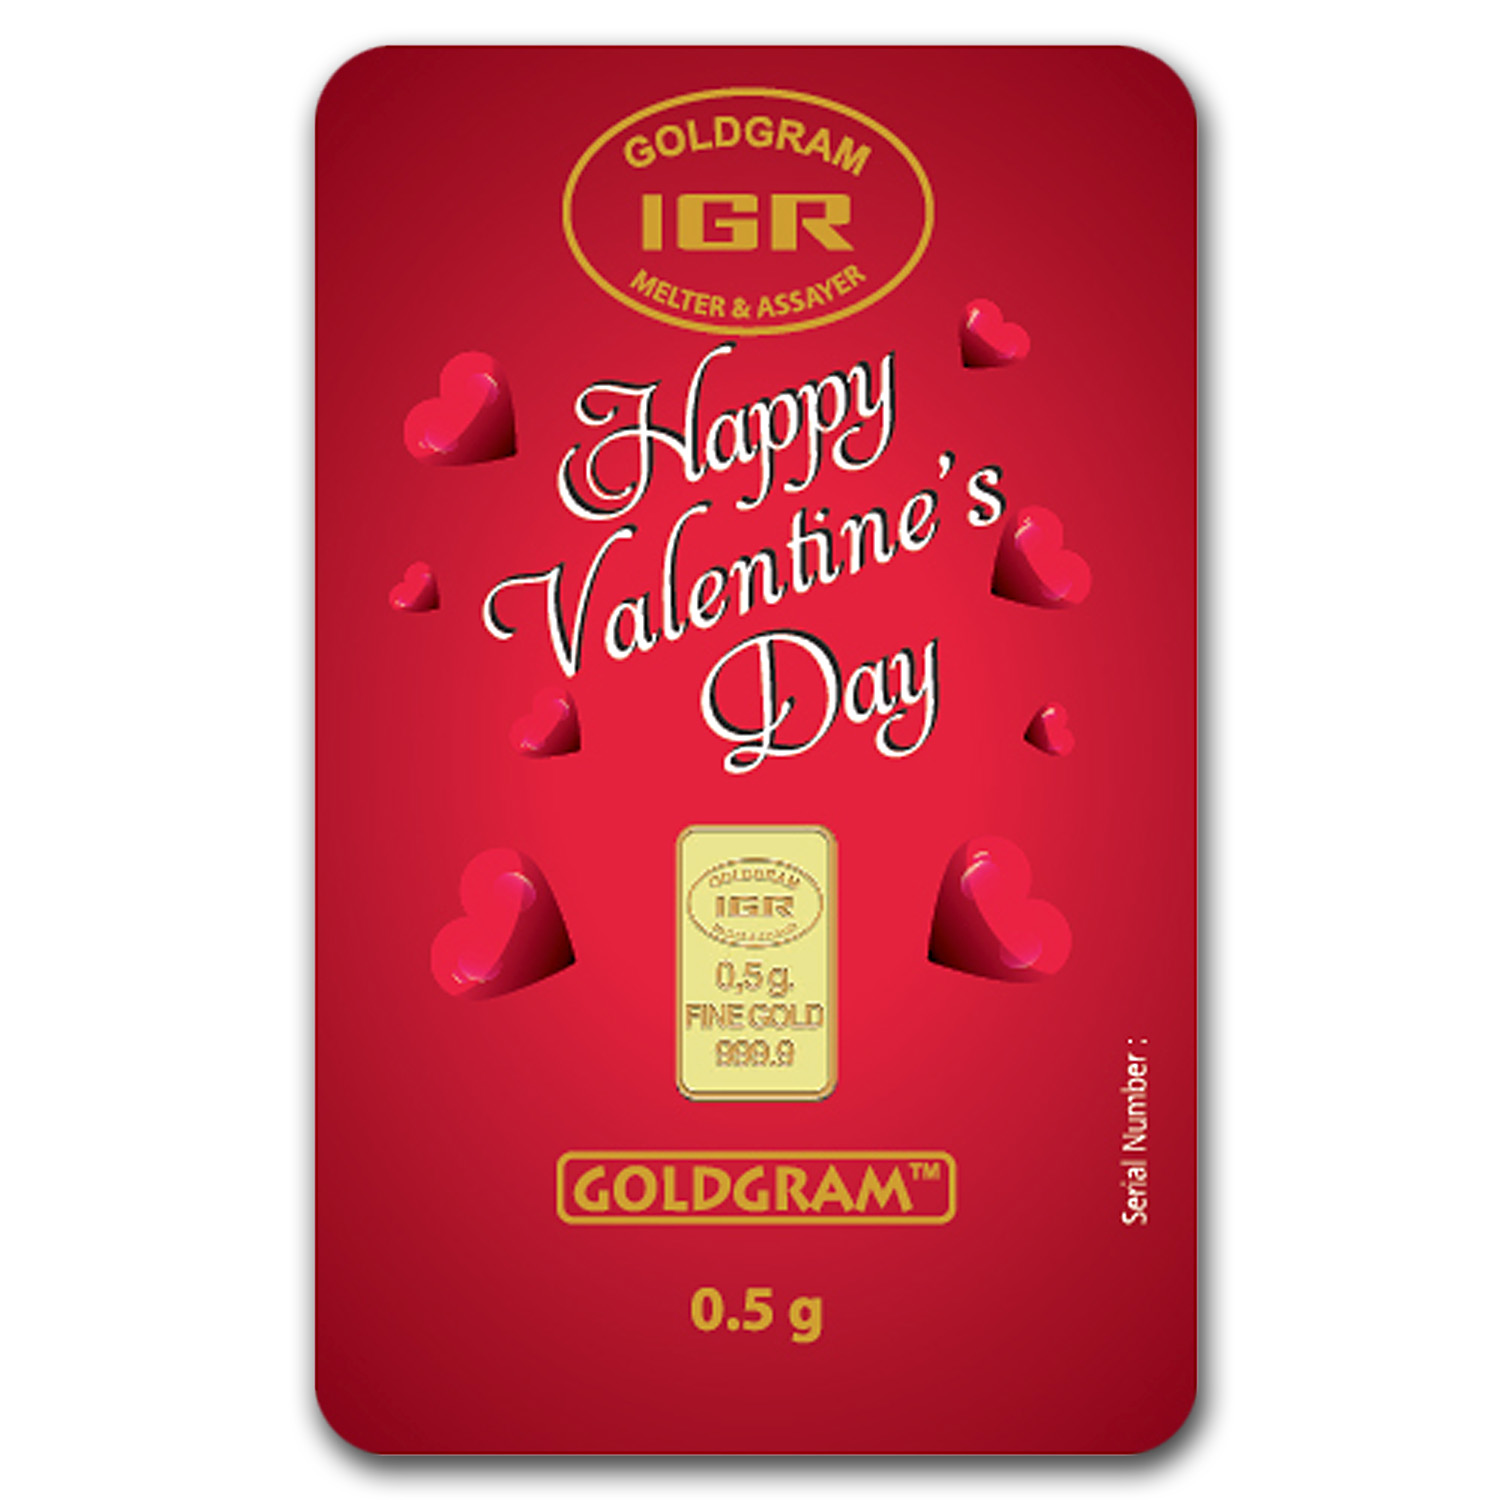 1/2 gram Gold Bar - IGR Happy Valentine's Day (In Assay)